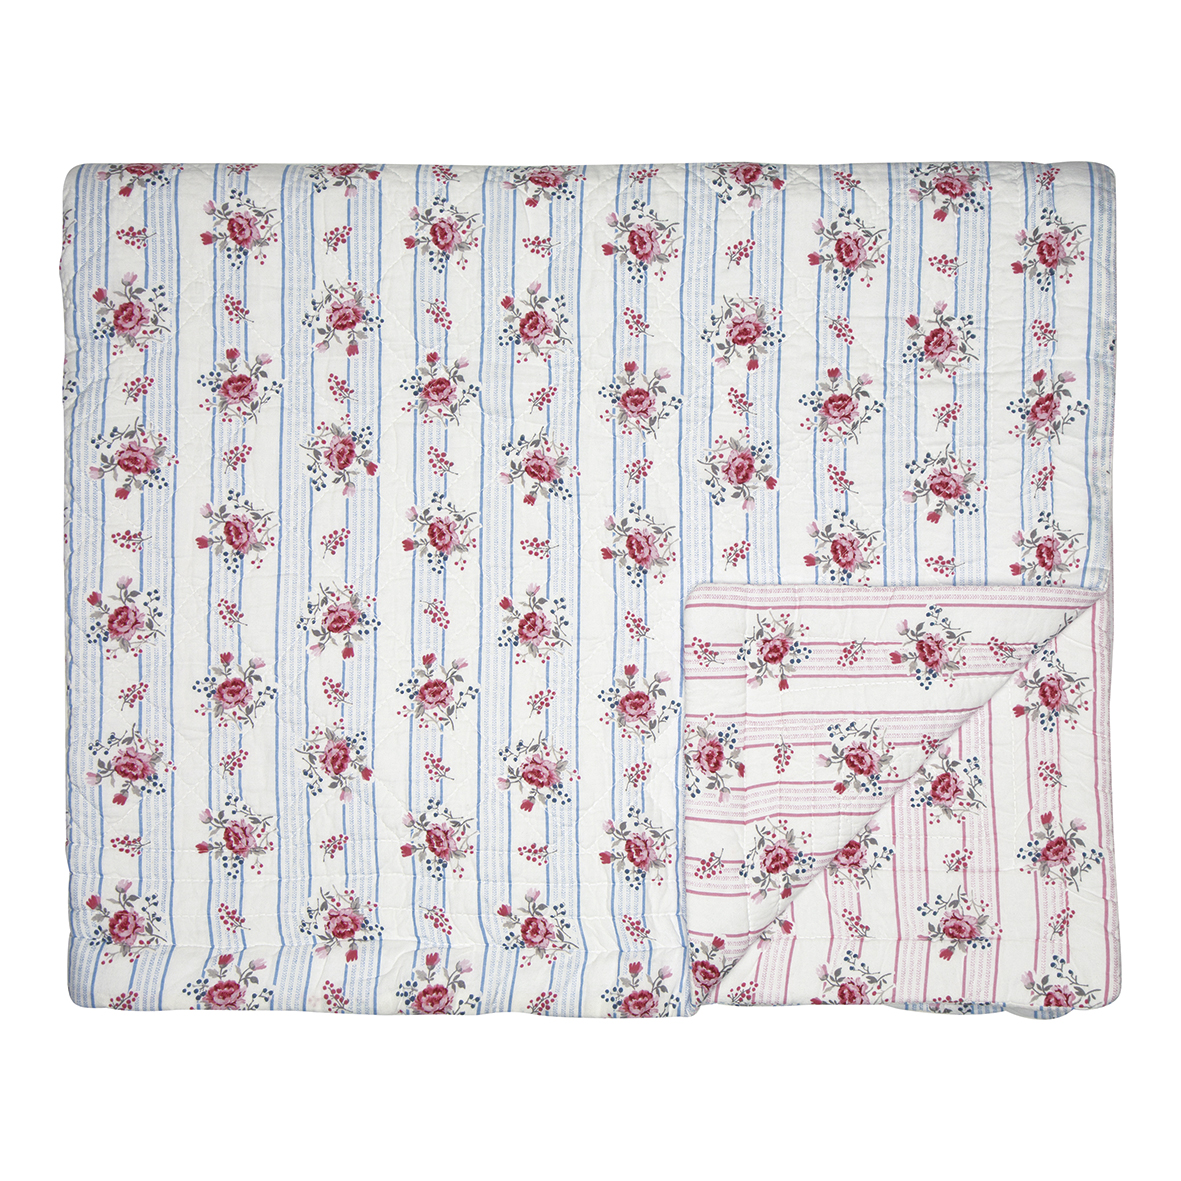 Greengate Quilt Fiona pale blue 250 x 260 cm Tagesdecke